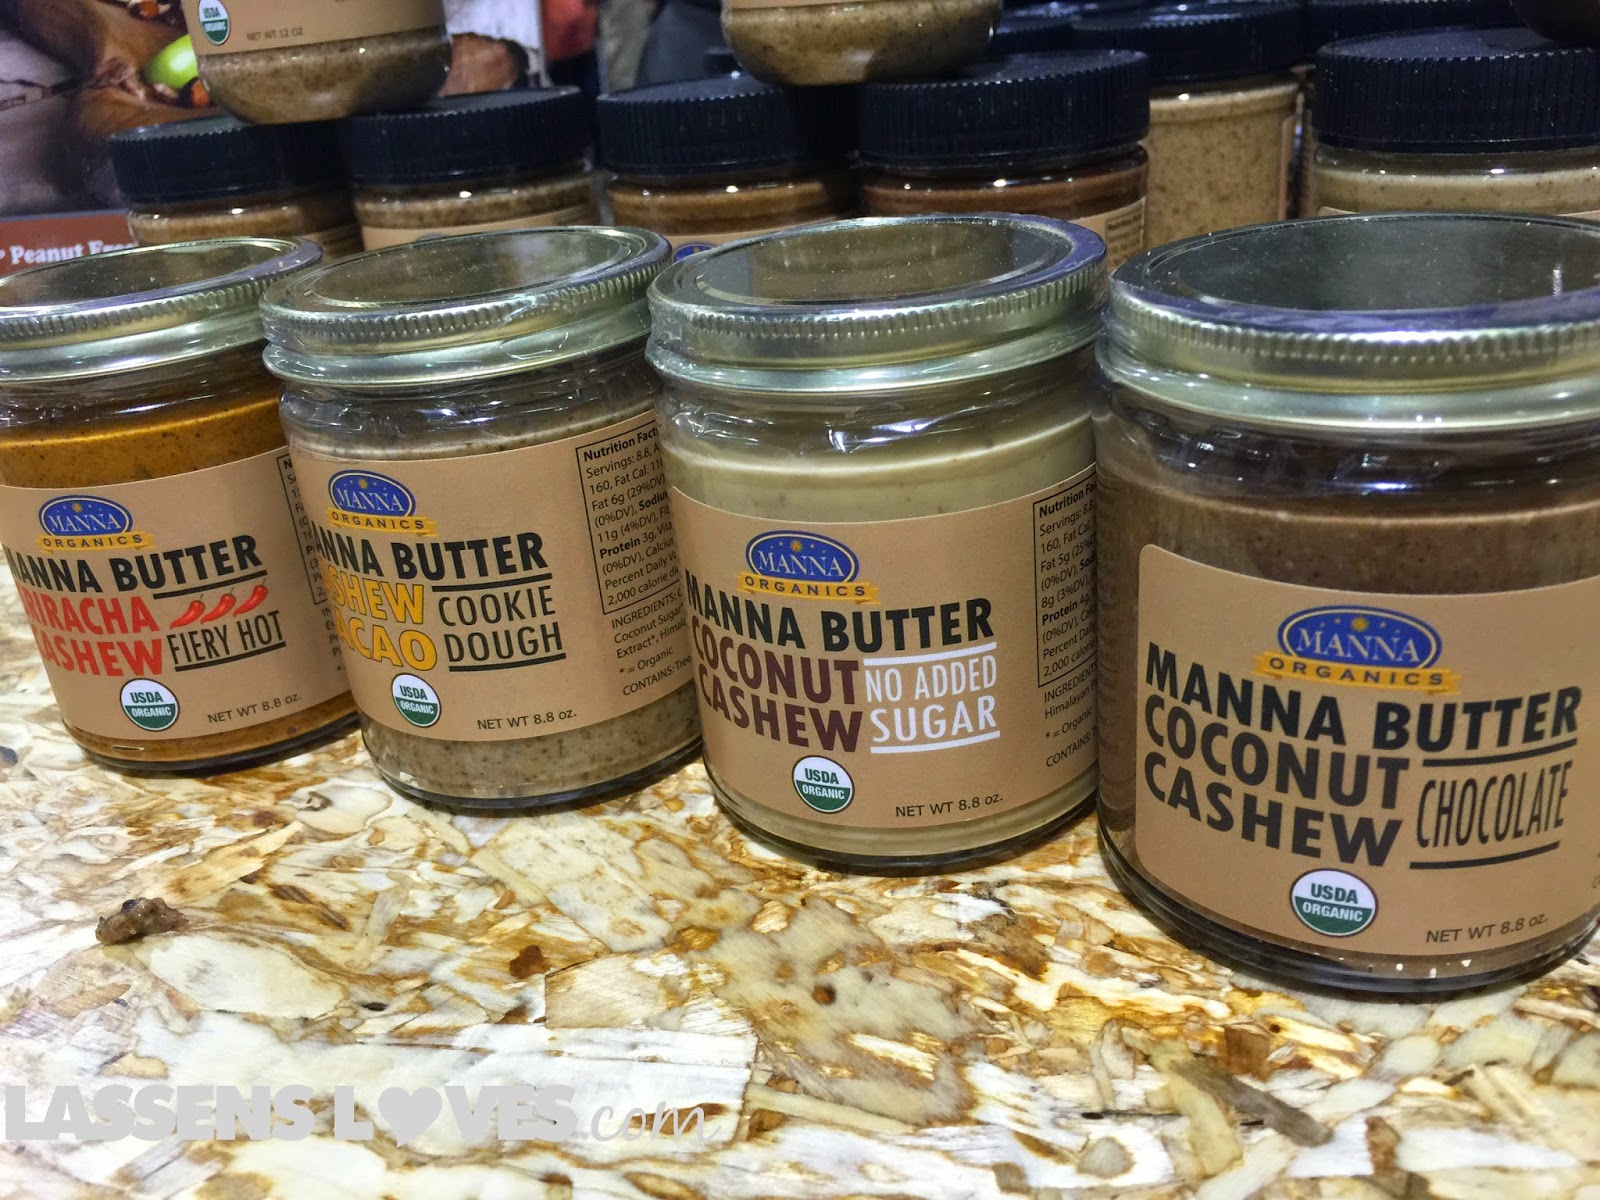 Expo+West+2015, Natural+Foods+Show, New+Natural+Products, manna+organics, nut+butters, nut+butter